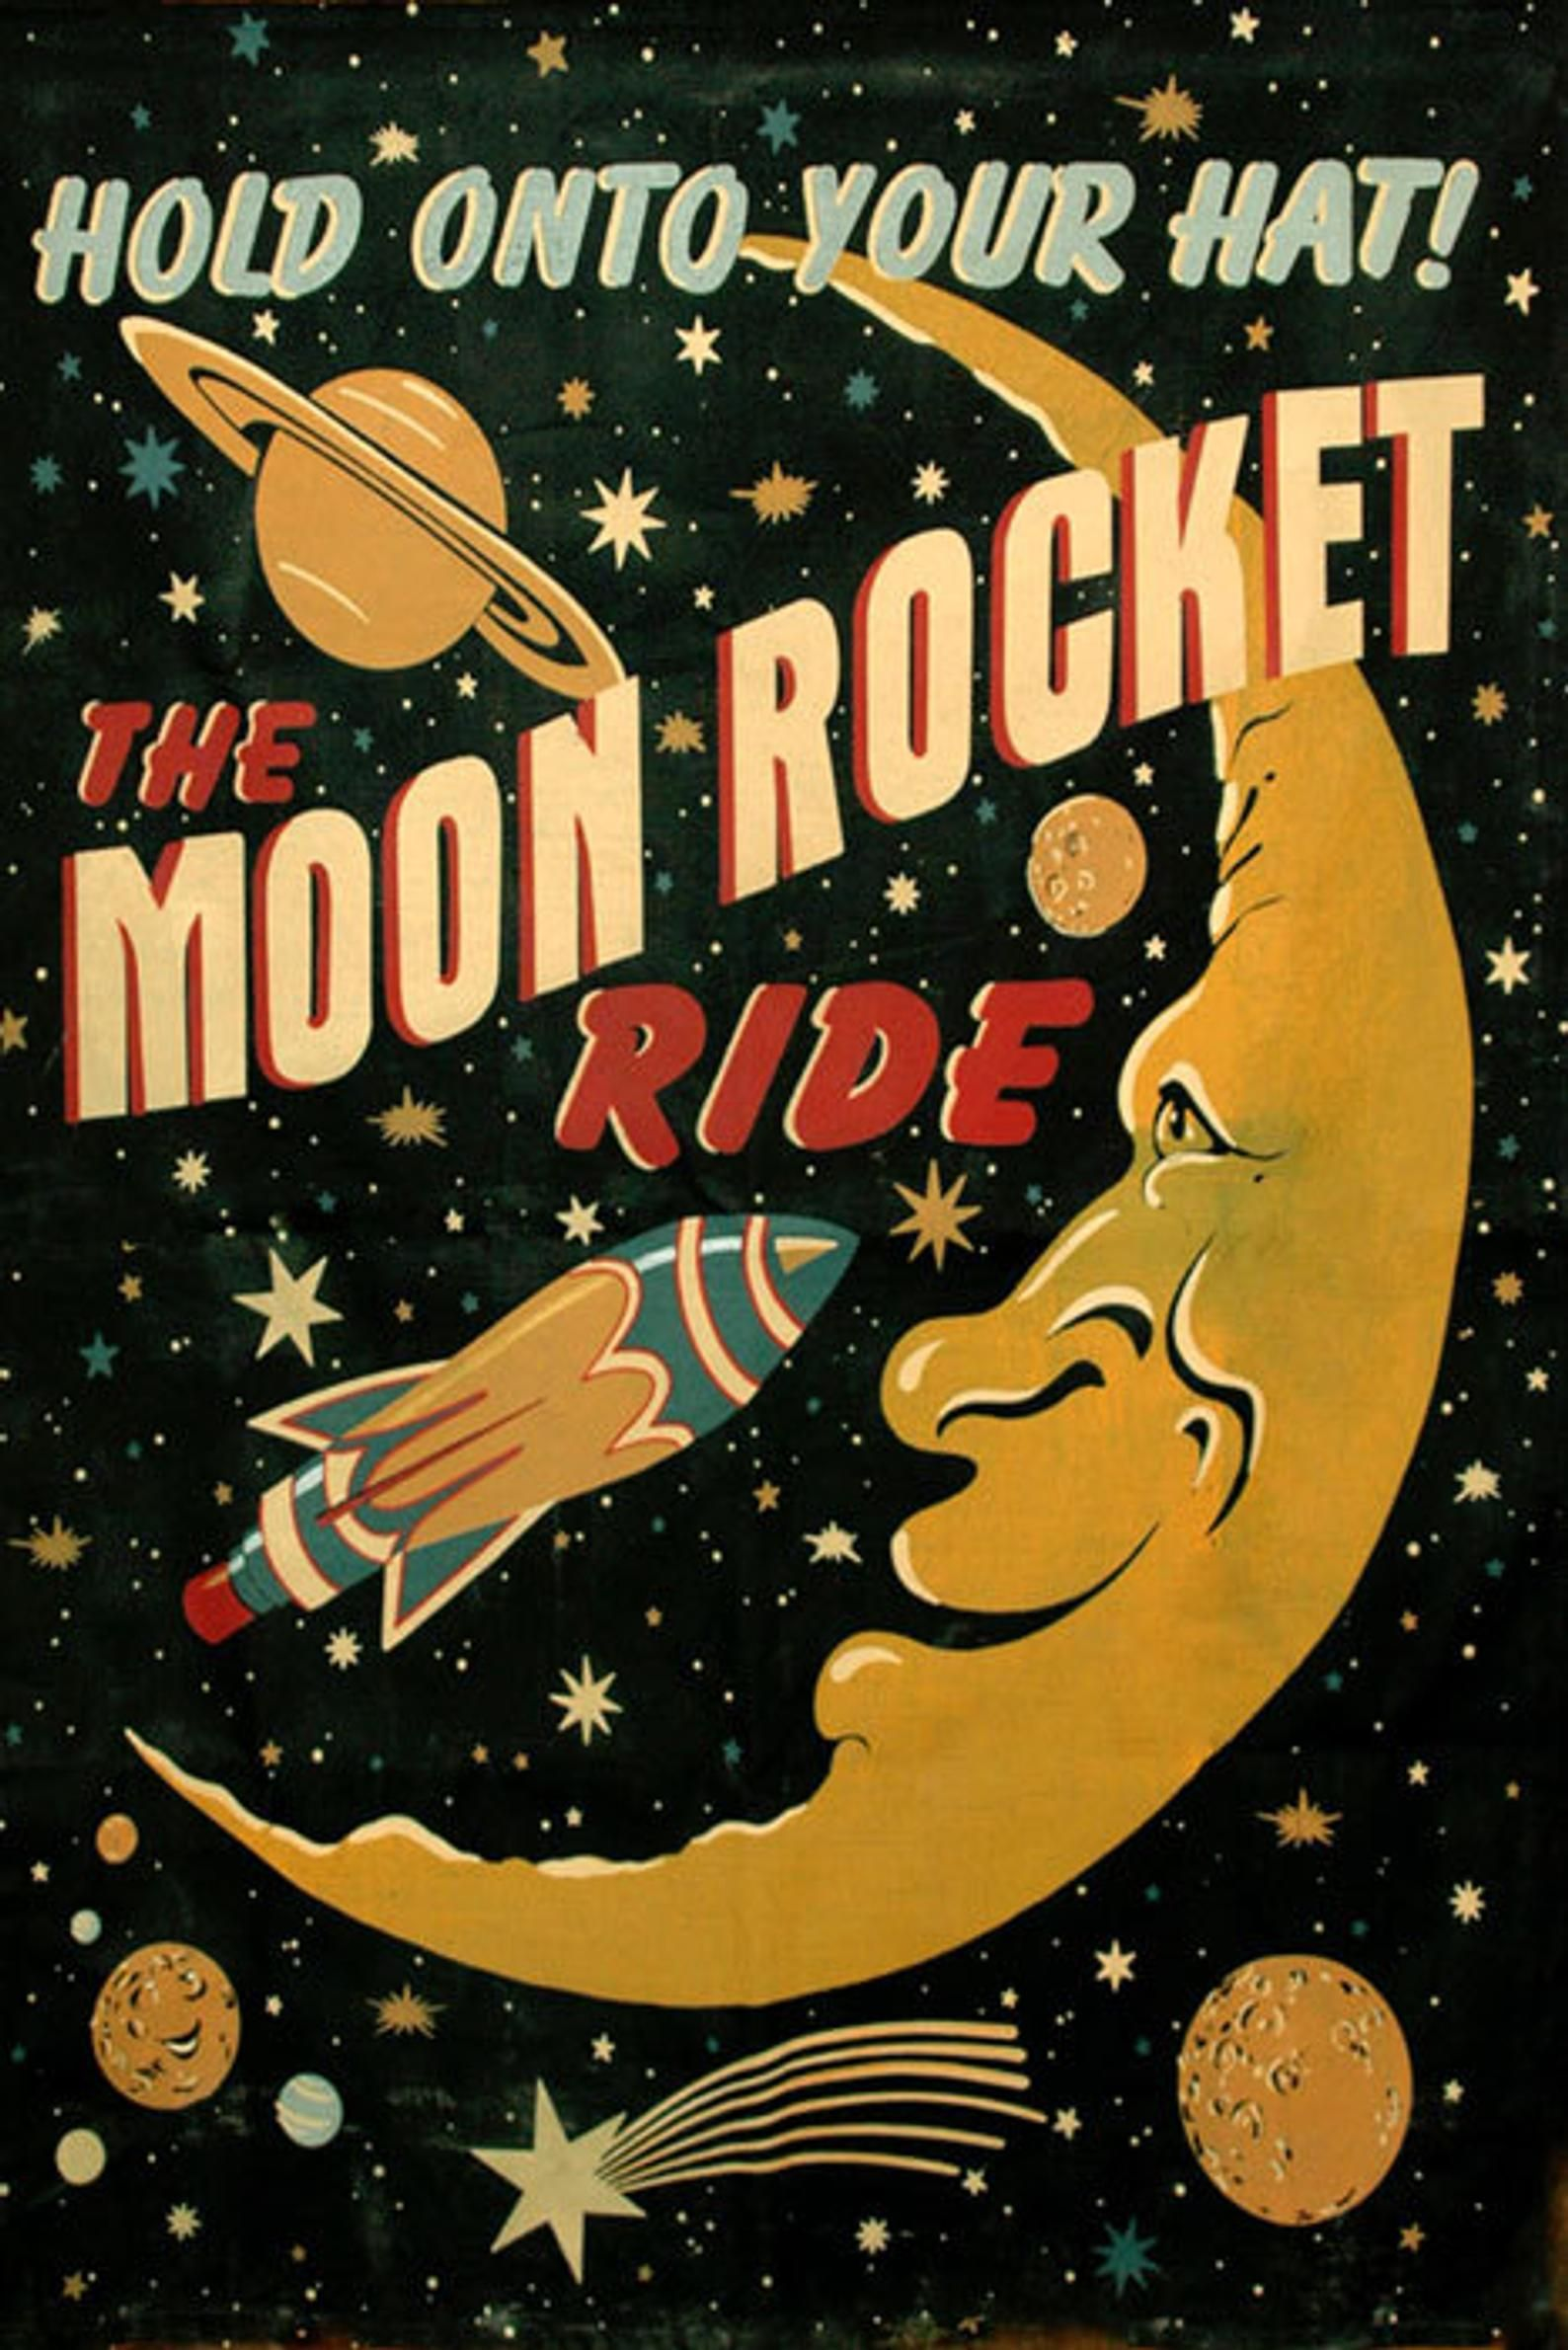 Sci-Fi Moon Saturn Comet Rocket Spaceship Astronaut Travel Space Vintage Poster Repro Free S/H in USA